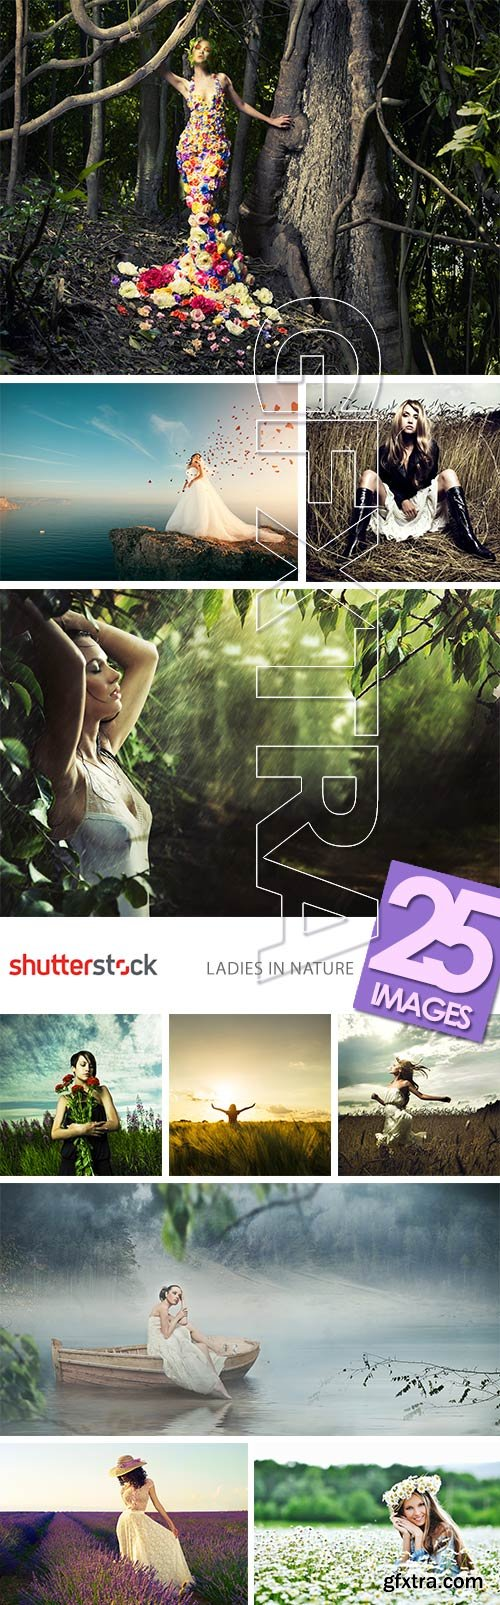 Shutterstock - Ladies in Nature 25xJPG GFXTRA.COM!